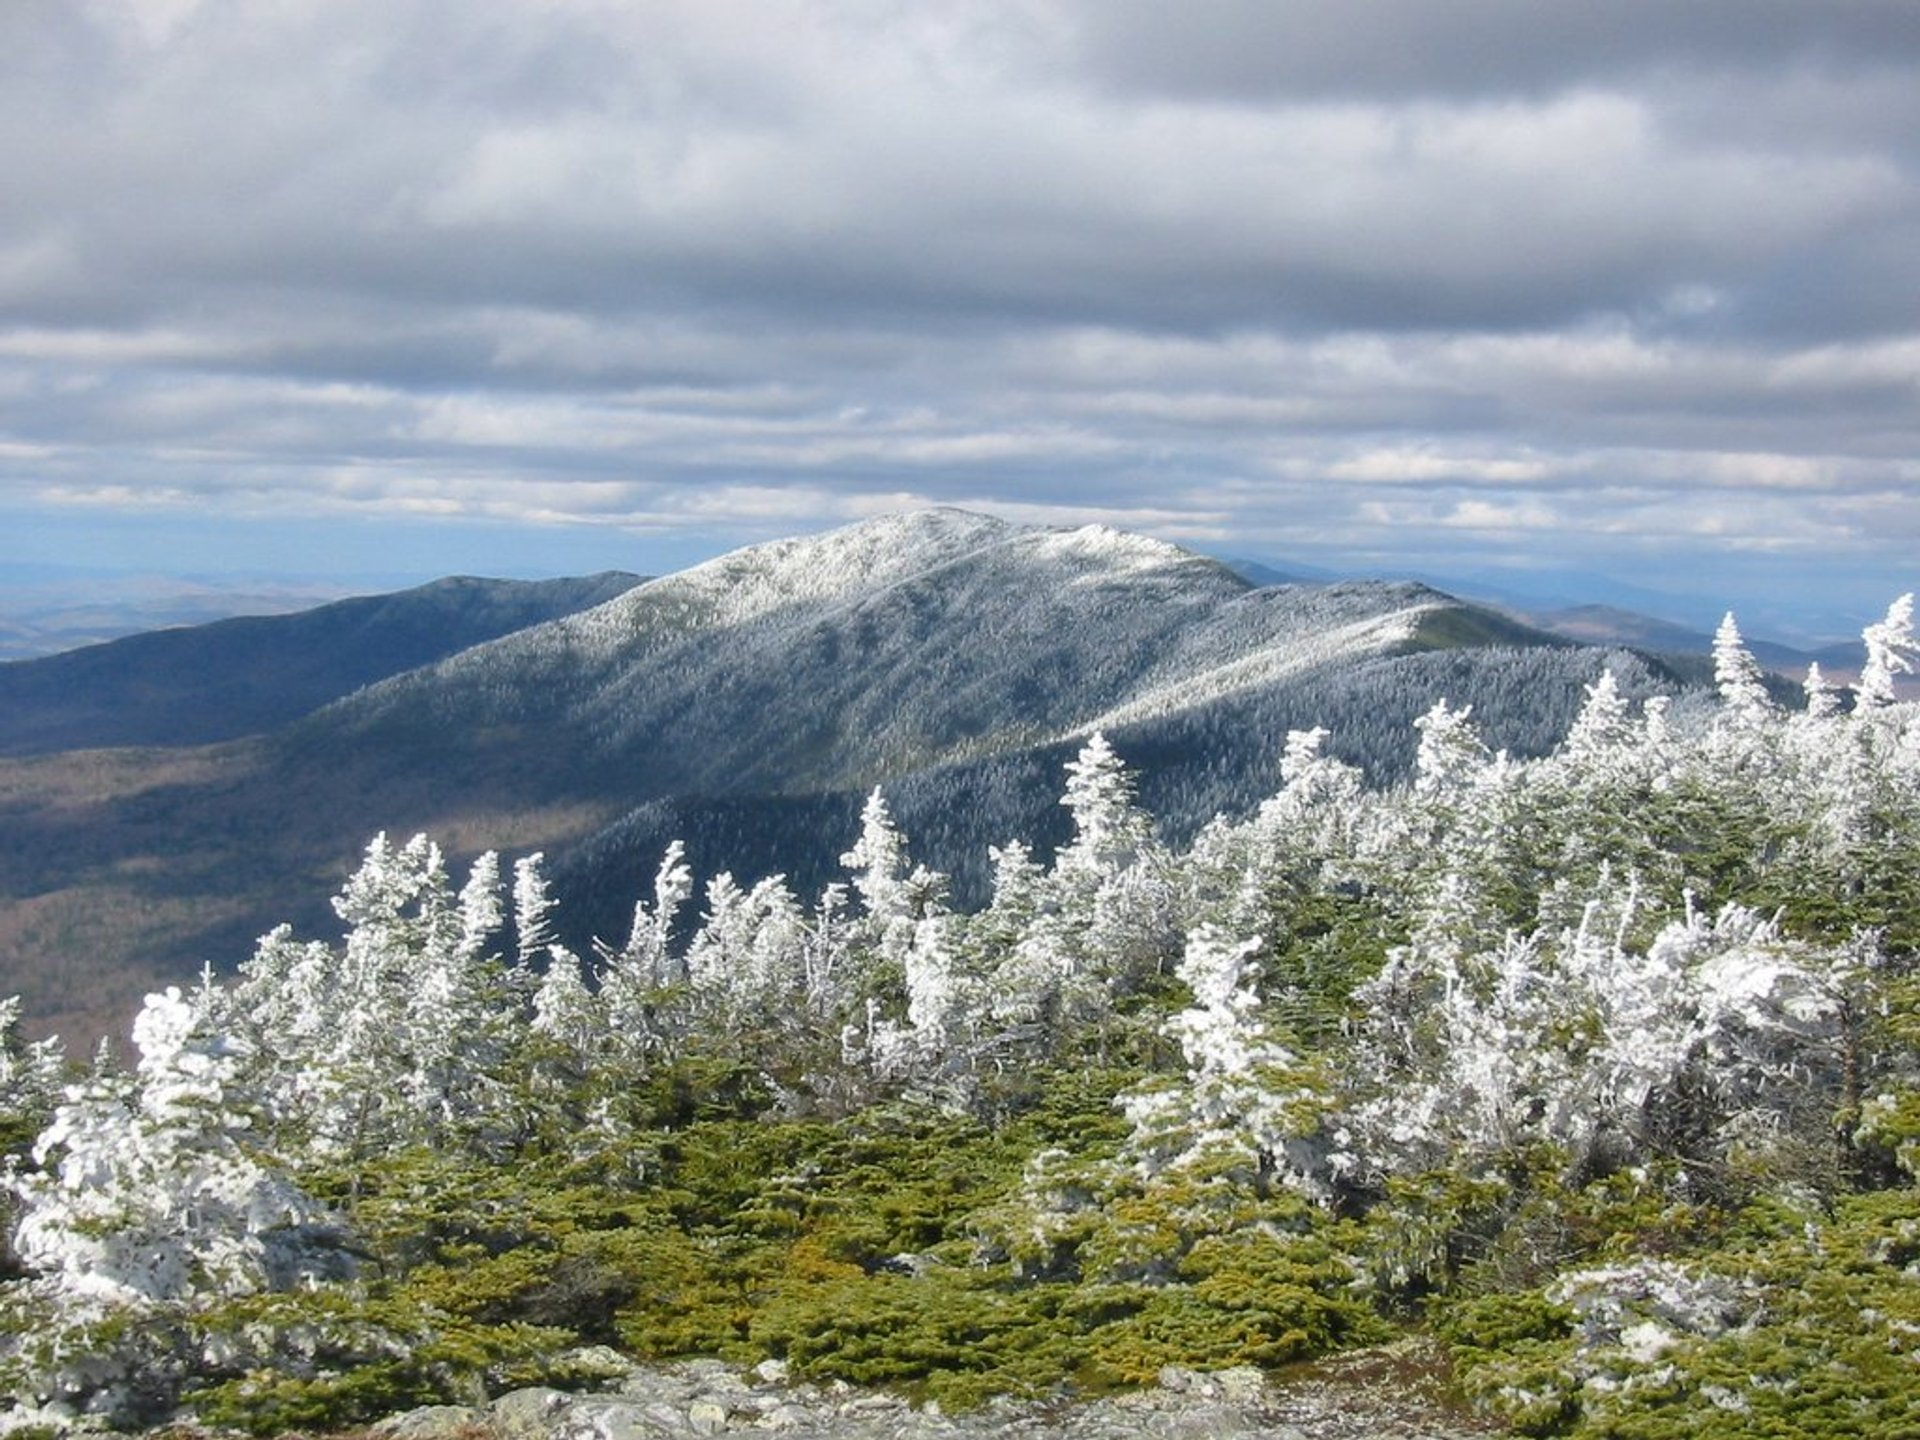 Mt. Abraham on the Long Trail 2020